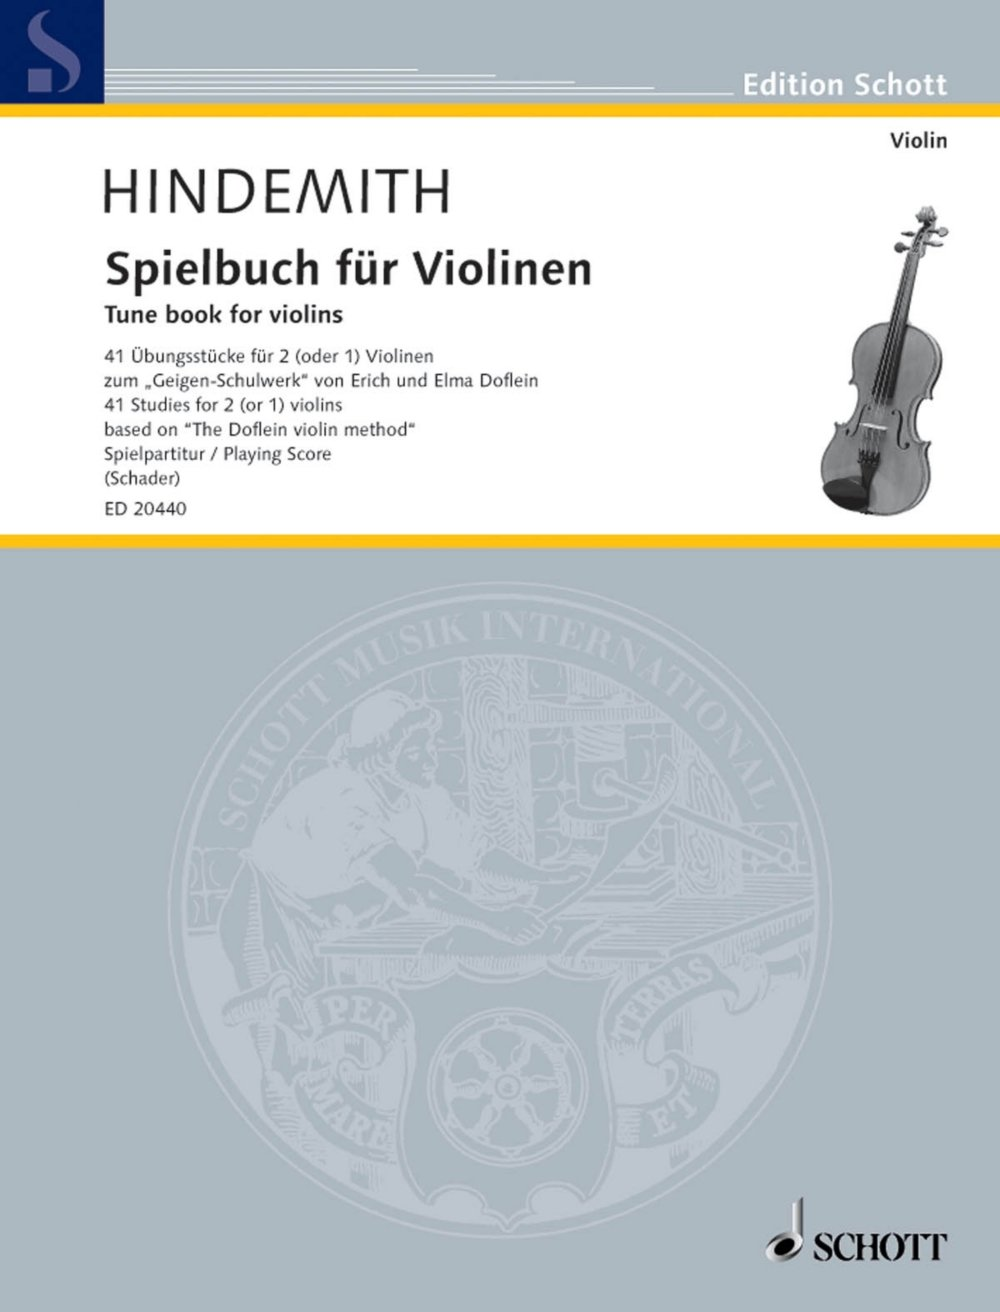 Download Schott Tune Book for Violins (41 Studies for 2 (or 1) Violins Based on The Doflein Violin Method) Schott Series pdf